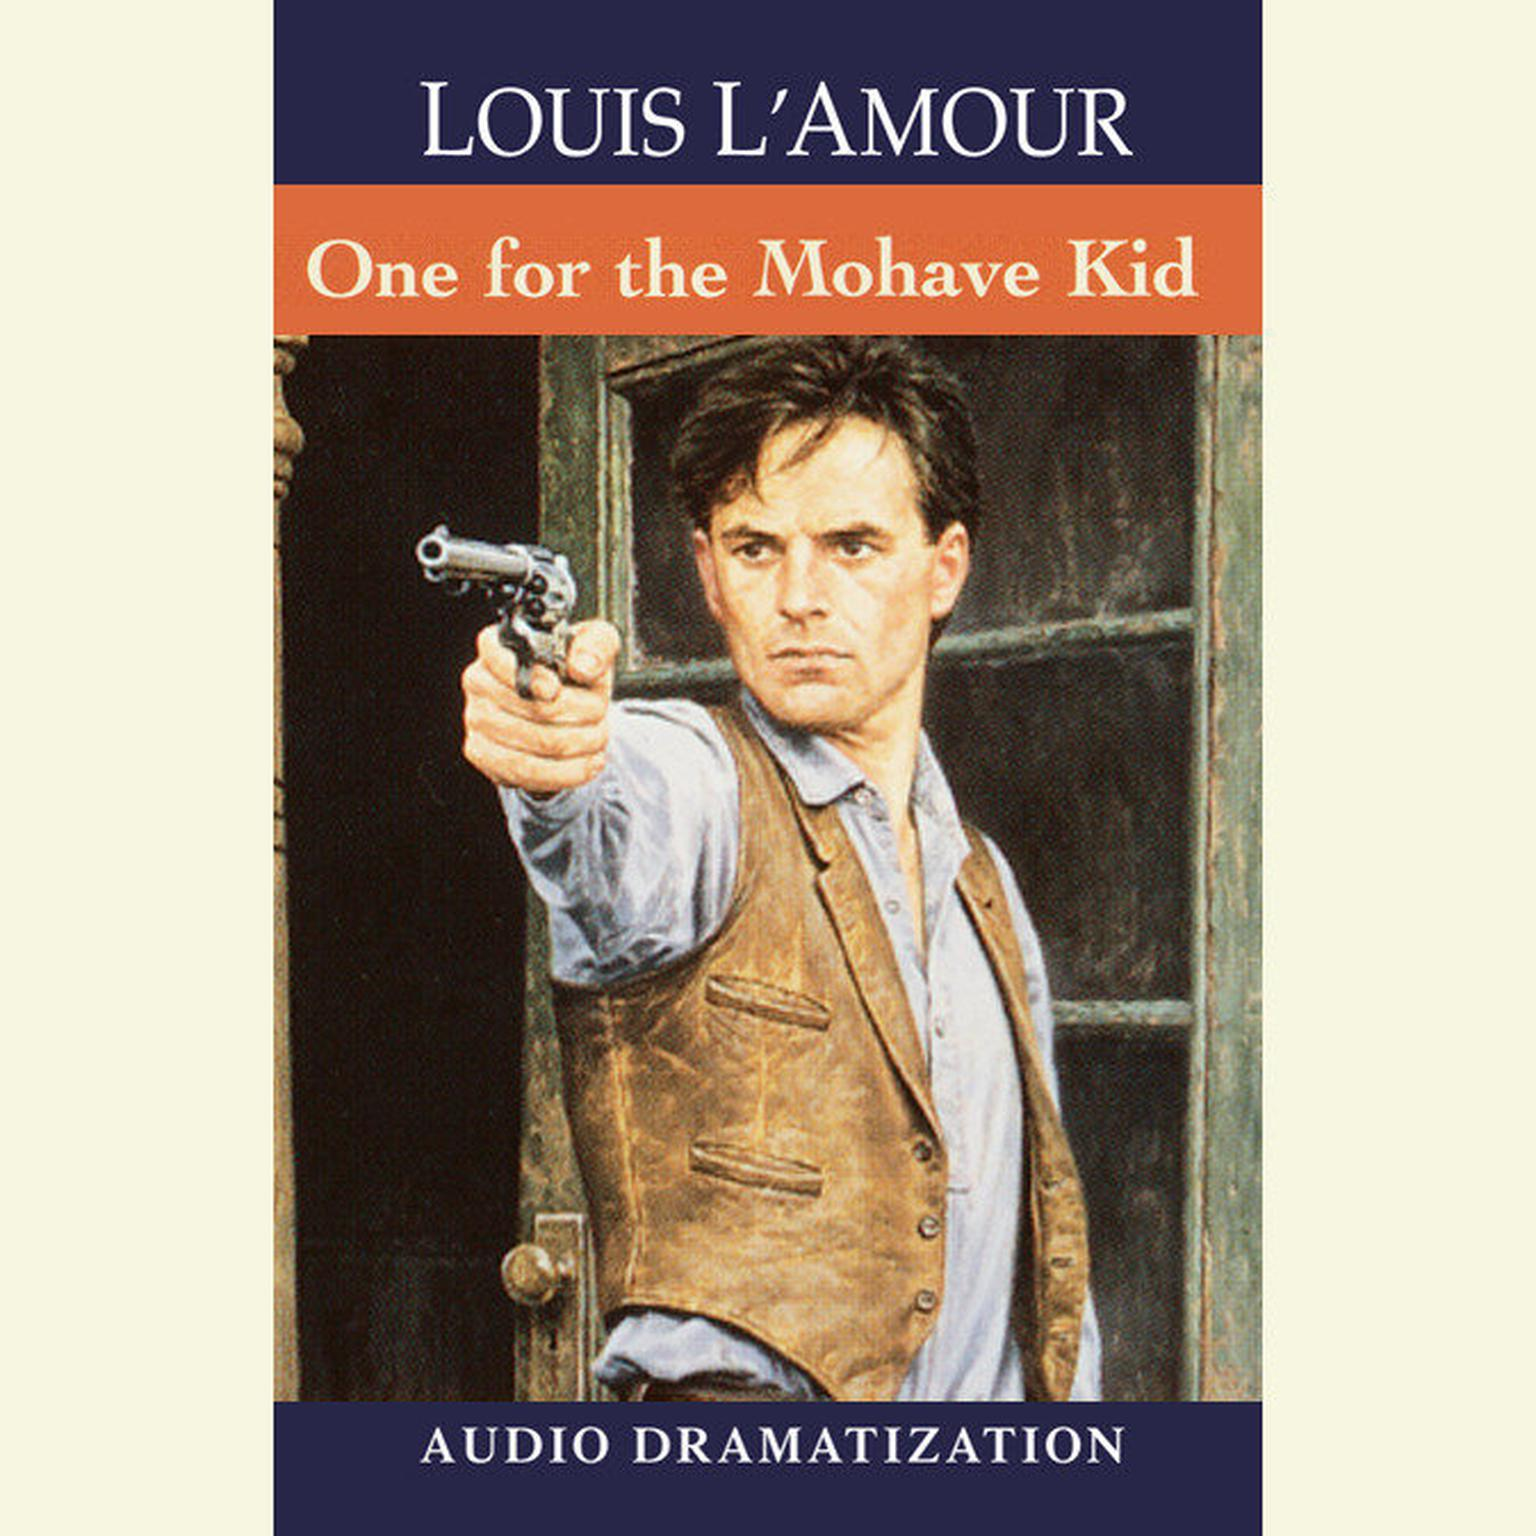 Printable The One for the Mojave Kid Audiobook Cover Art